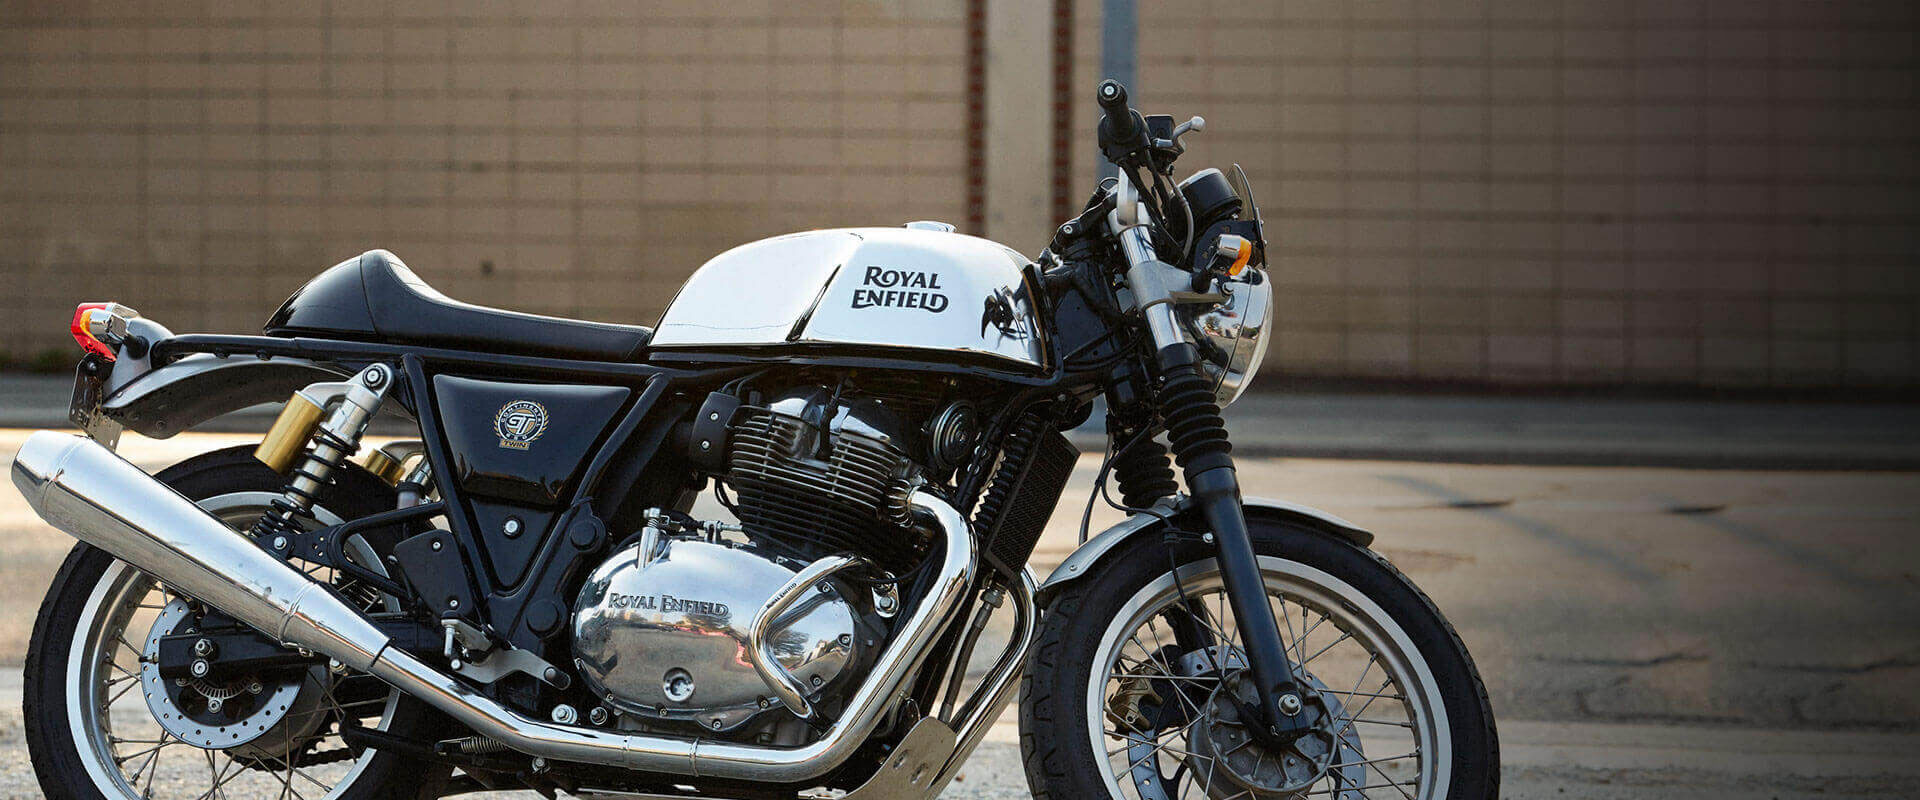 2019 royal enfield continental gt 650 guide totalmotorcycle. Black Bedroom Furniture Sets. Home Design Ideas